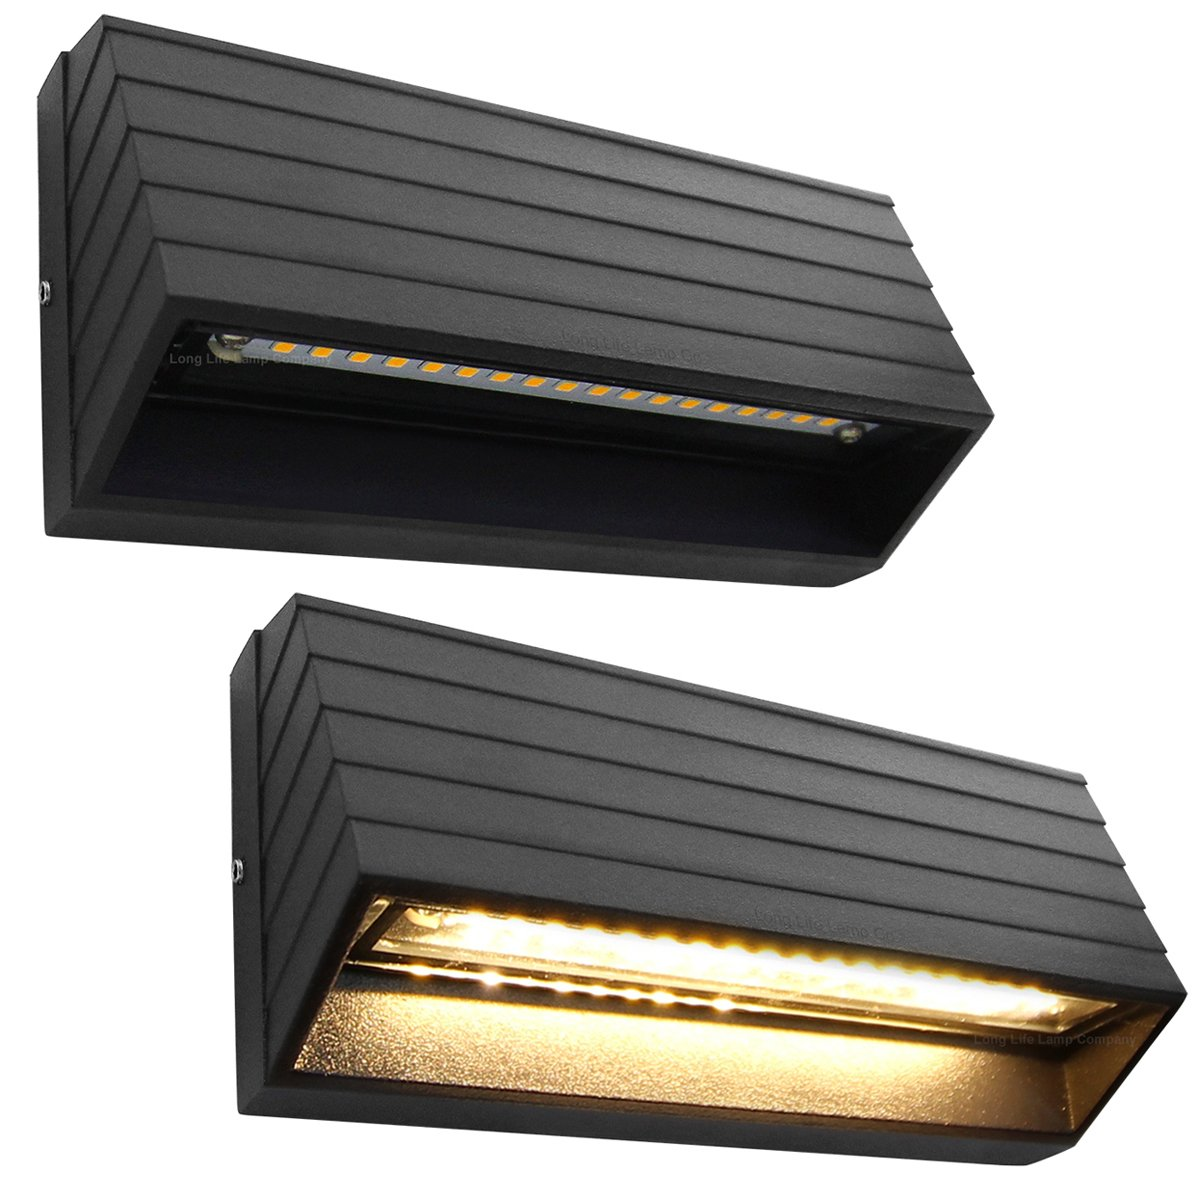 2 x LED Outdoor Surface Mount Wall or Pathway Brick Light Black Finish Warm White ZLC039WW Long Life Lamp Company ZLC039WW2P